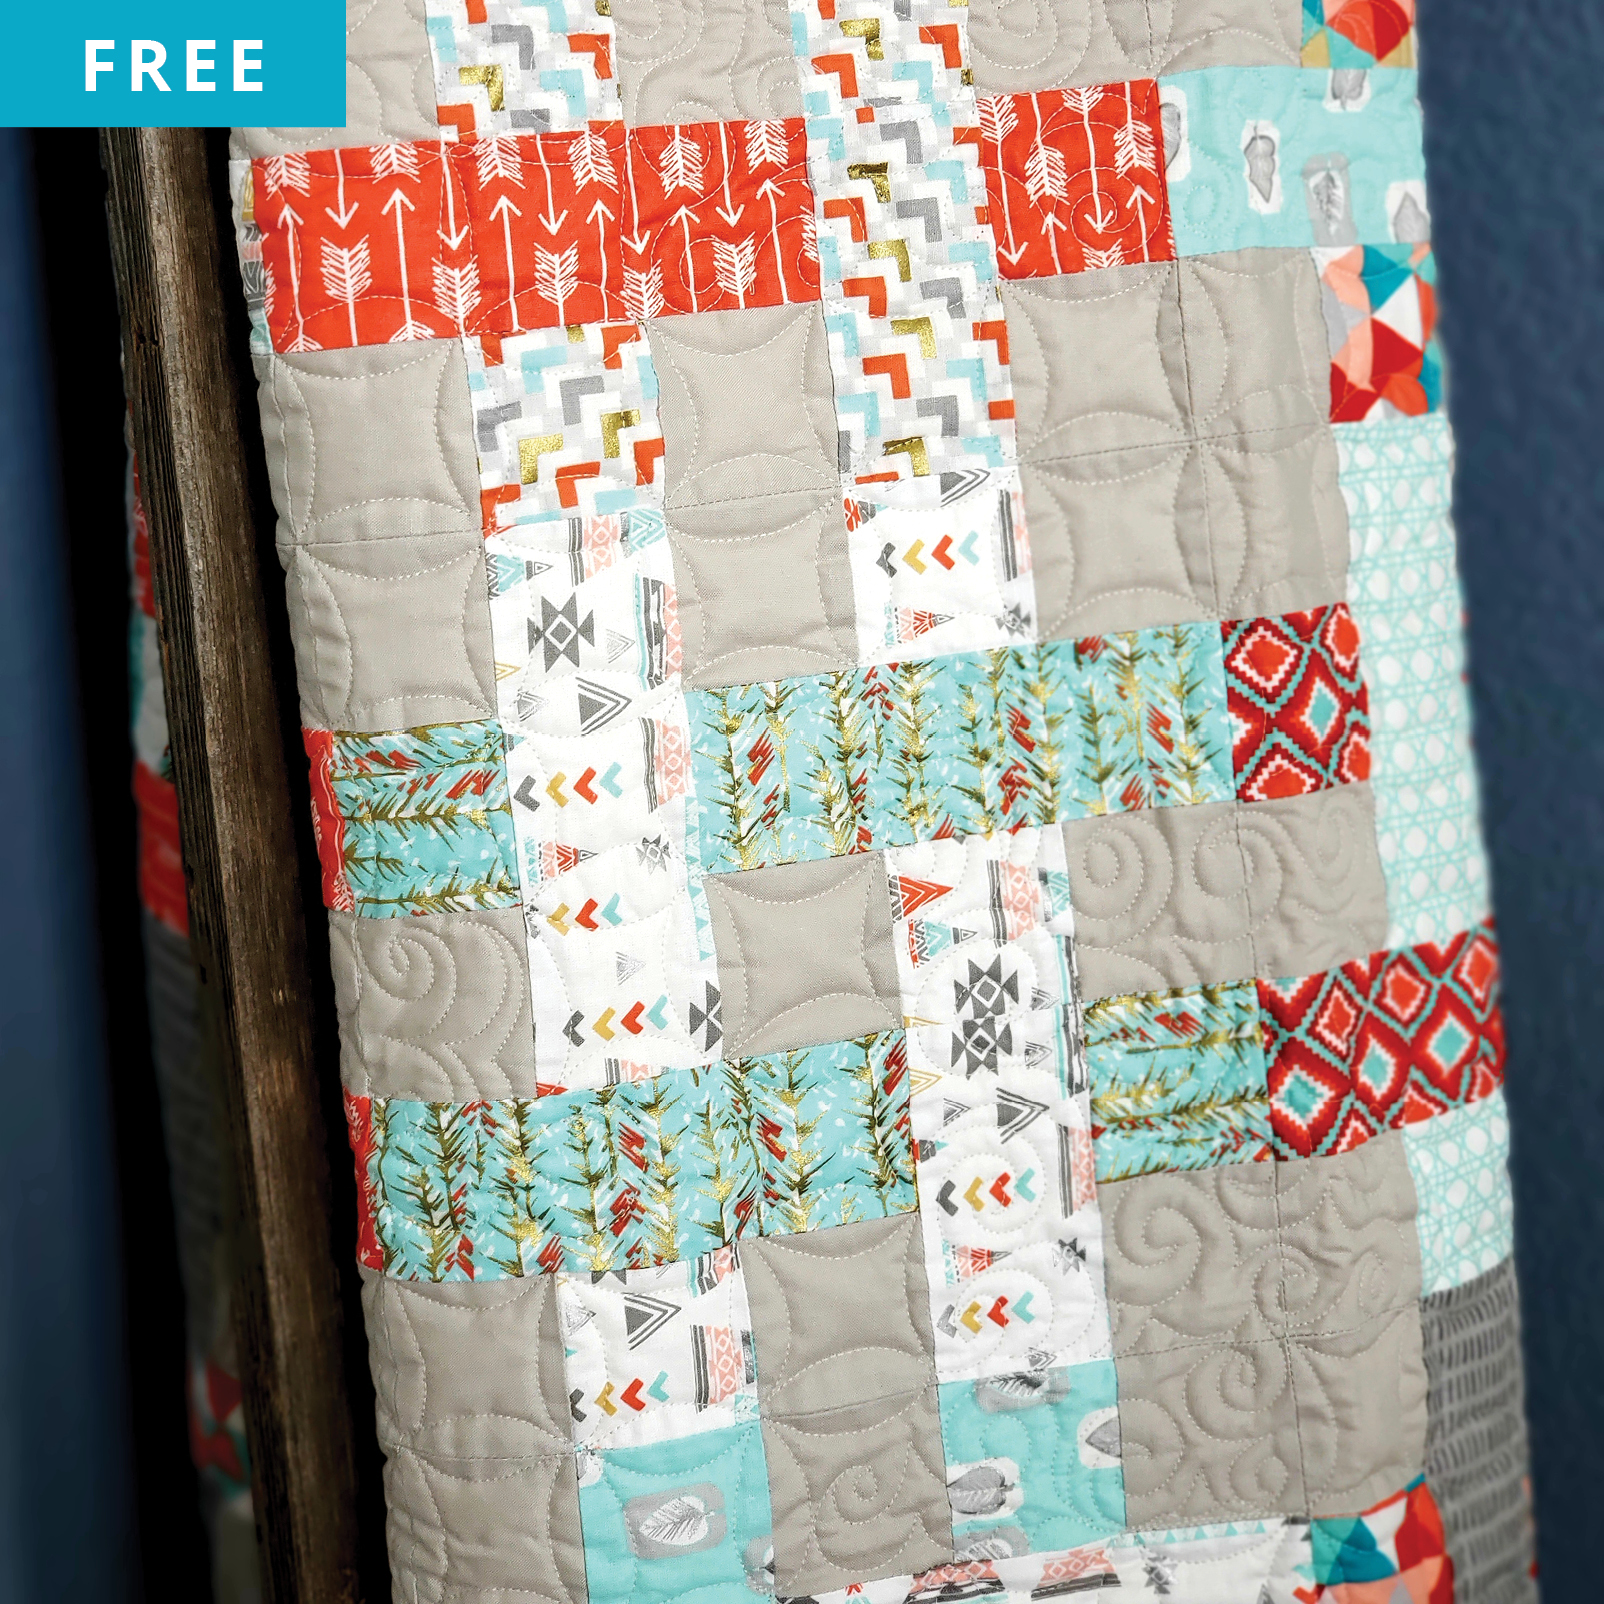 Free Quilt Pattern - Jelly Roll Jumble Quilt